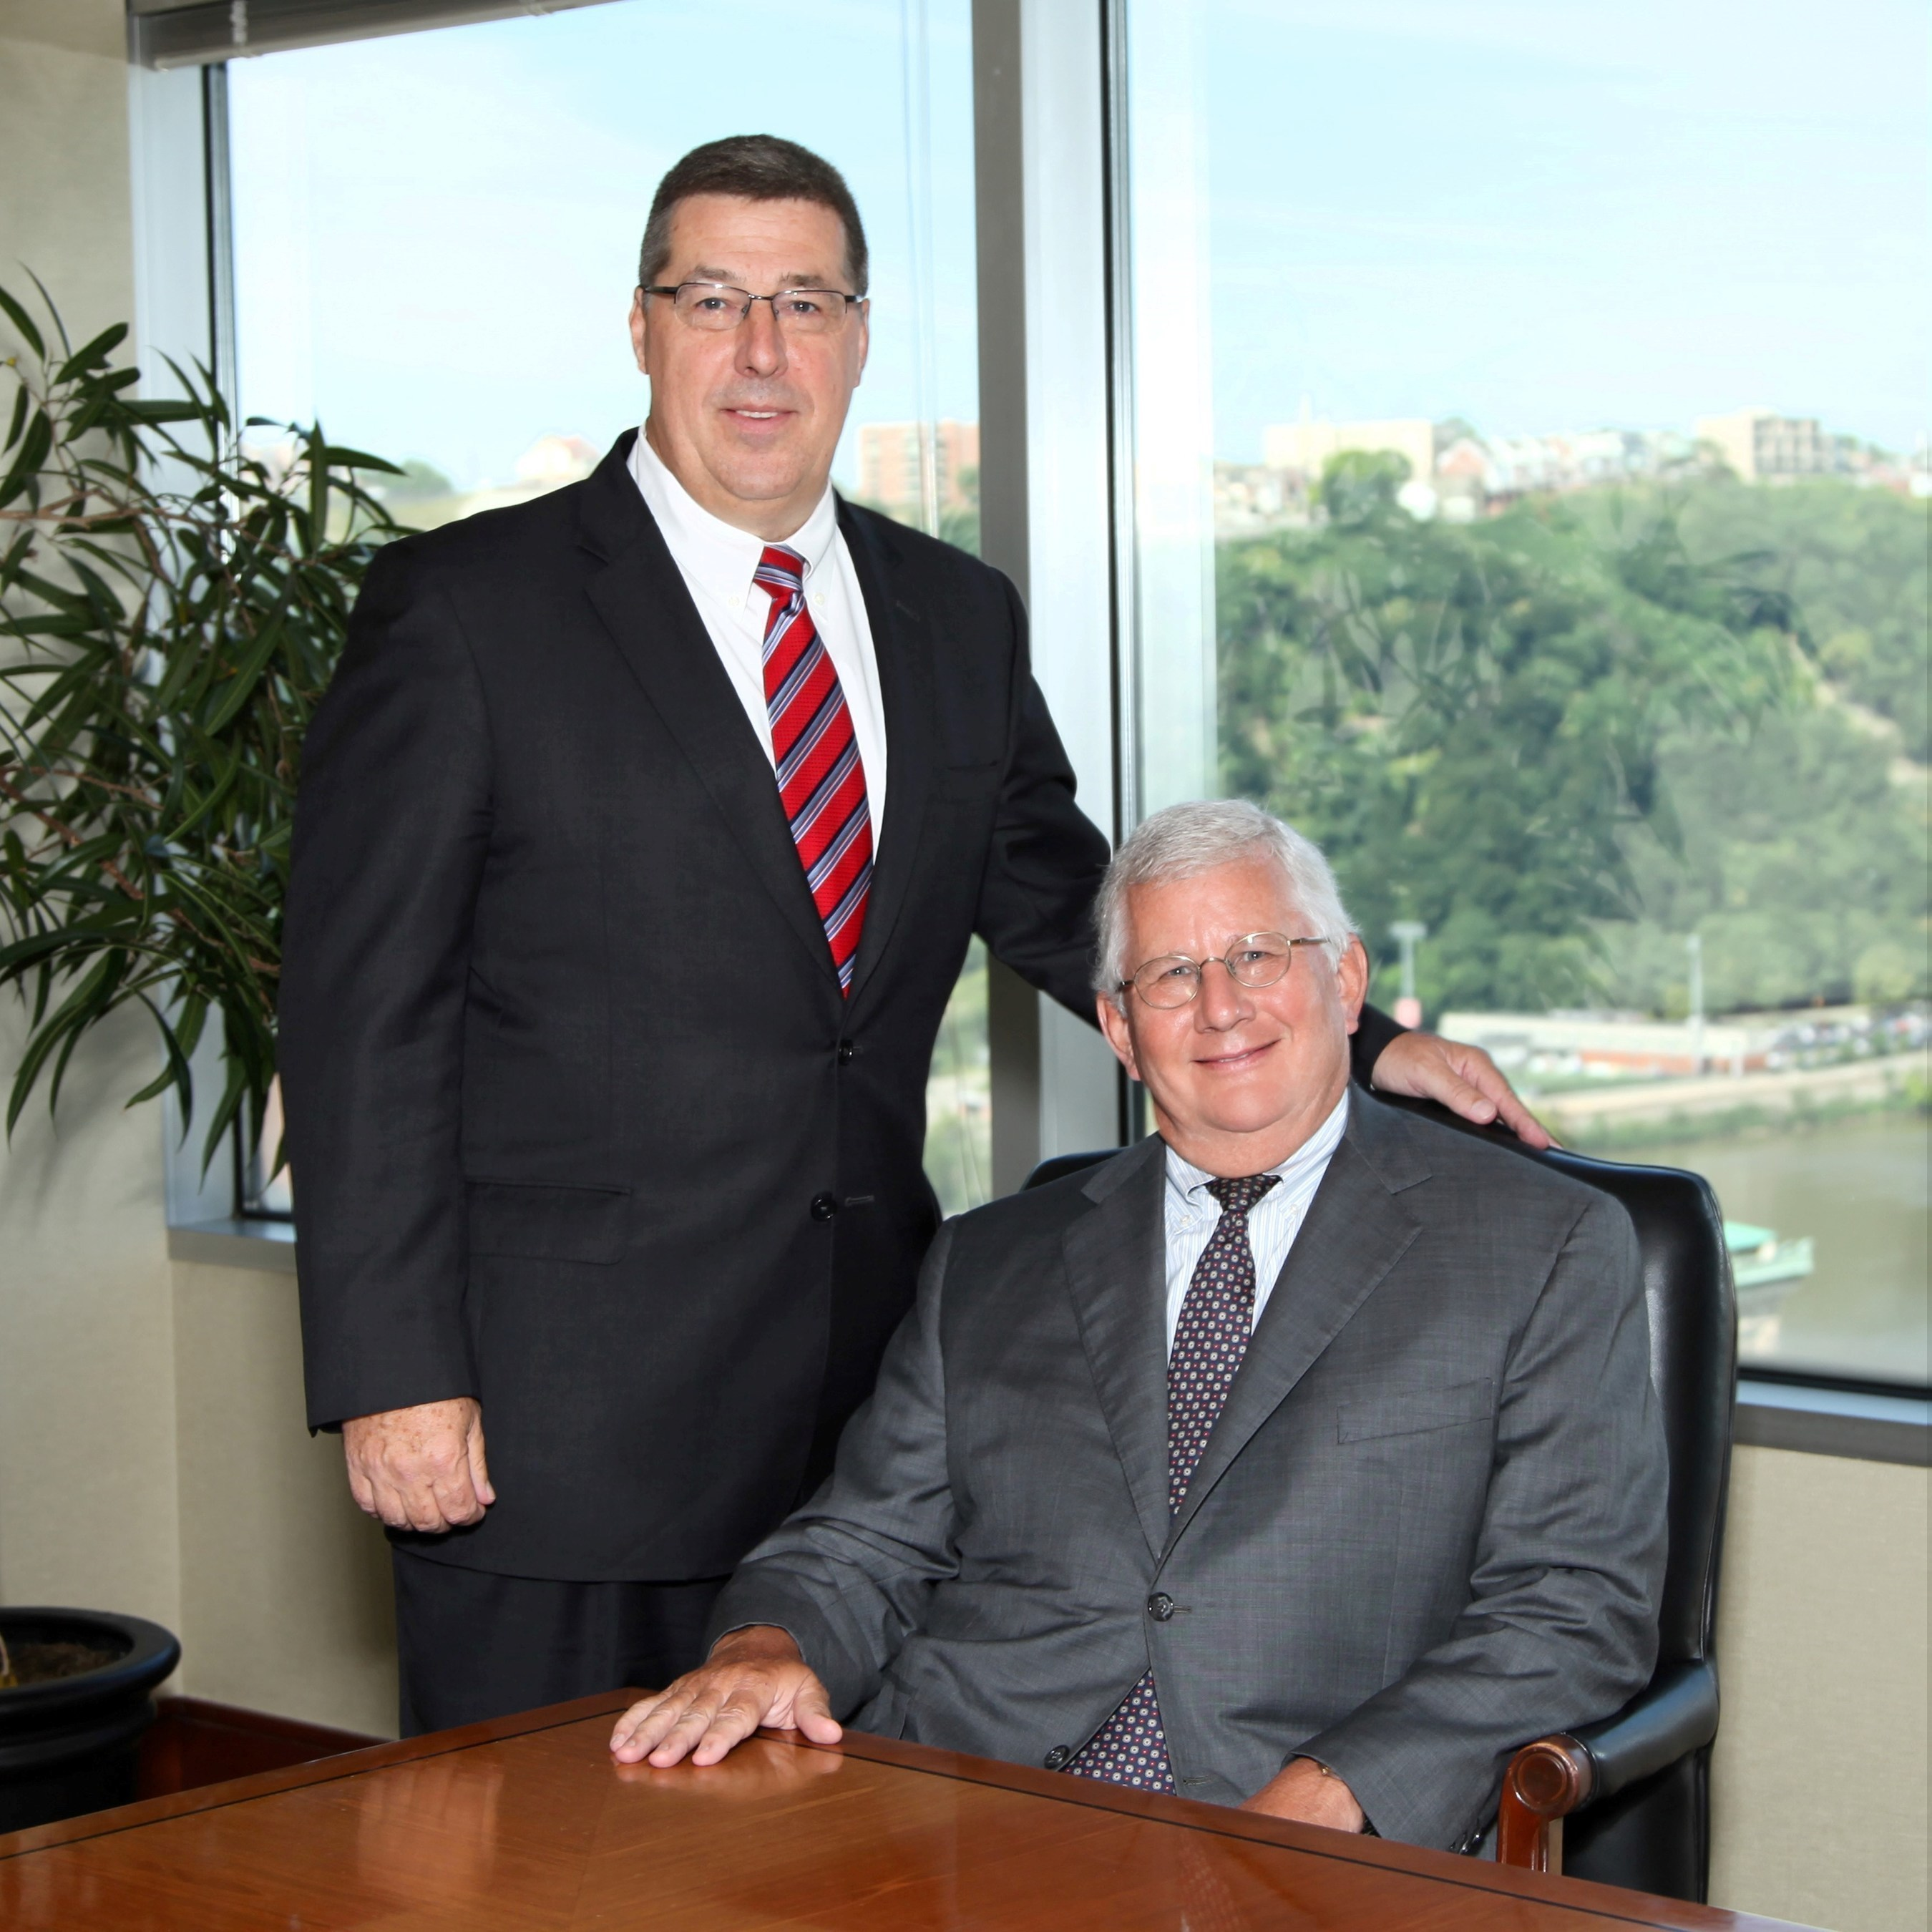 Buchanan Ingersoll & Rooney CEO, Managing Director and Chairman of the Board Jack Barbour and CEO-Elect Joe Dougherty